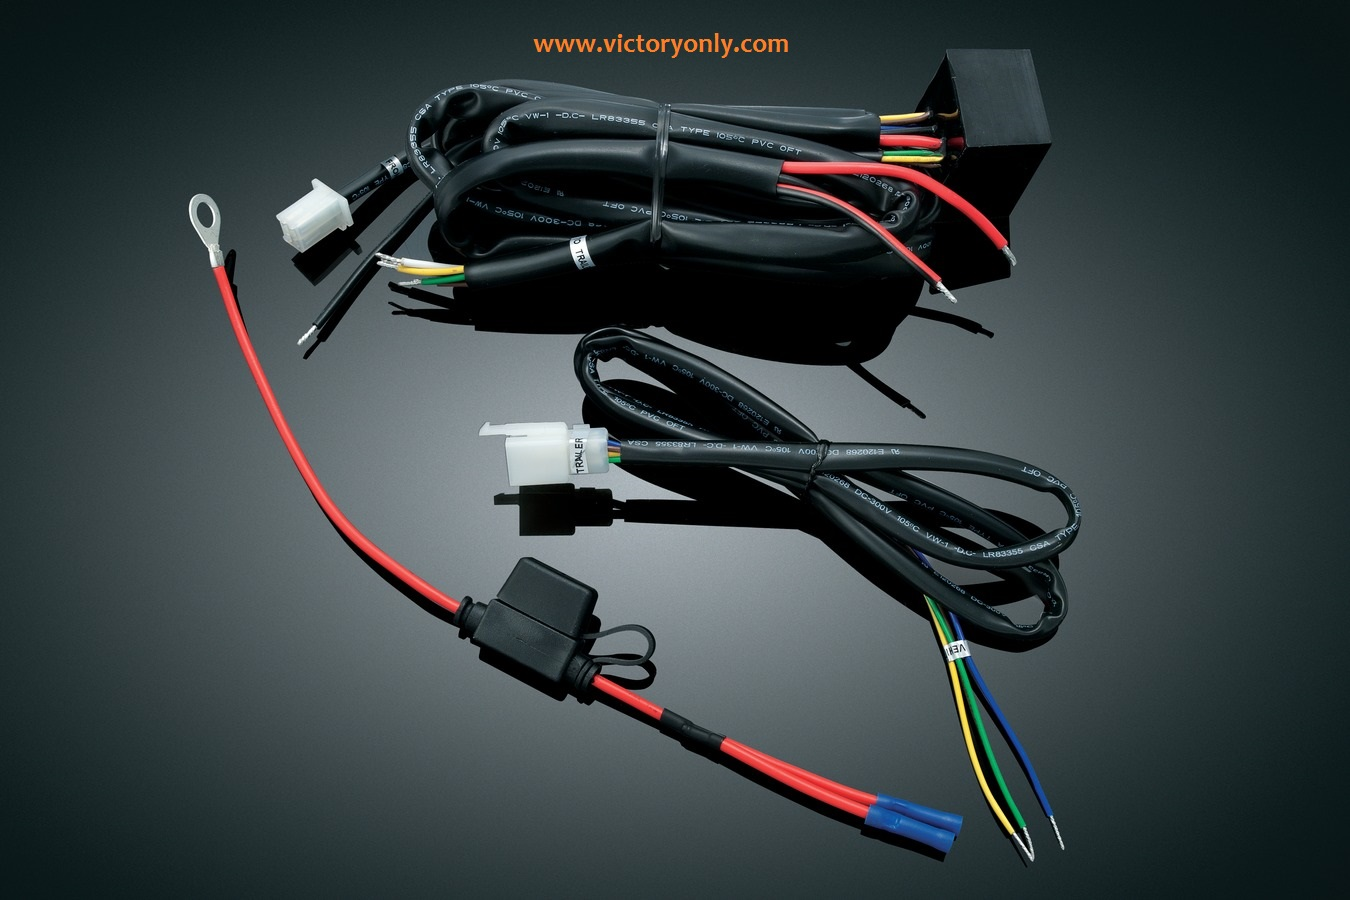 16997_kur_7671_tt_u_13_1350x900_RGB_72DPI trailer wiring harnesses for victory motorcycle motorcycle trailer wiring harness at edmiracle.co